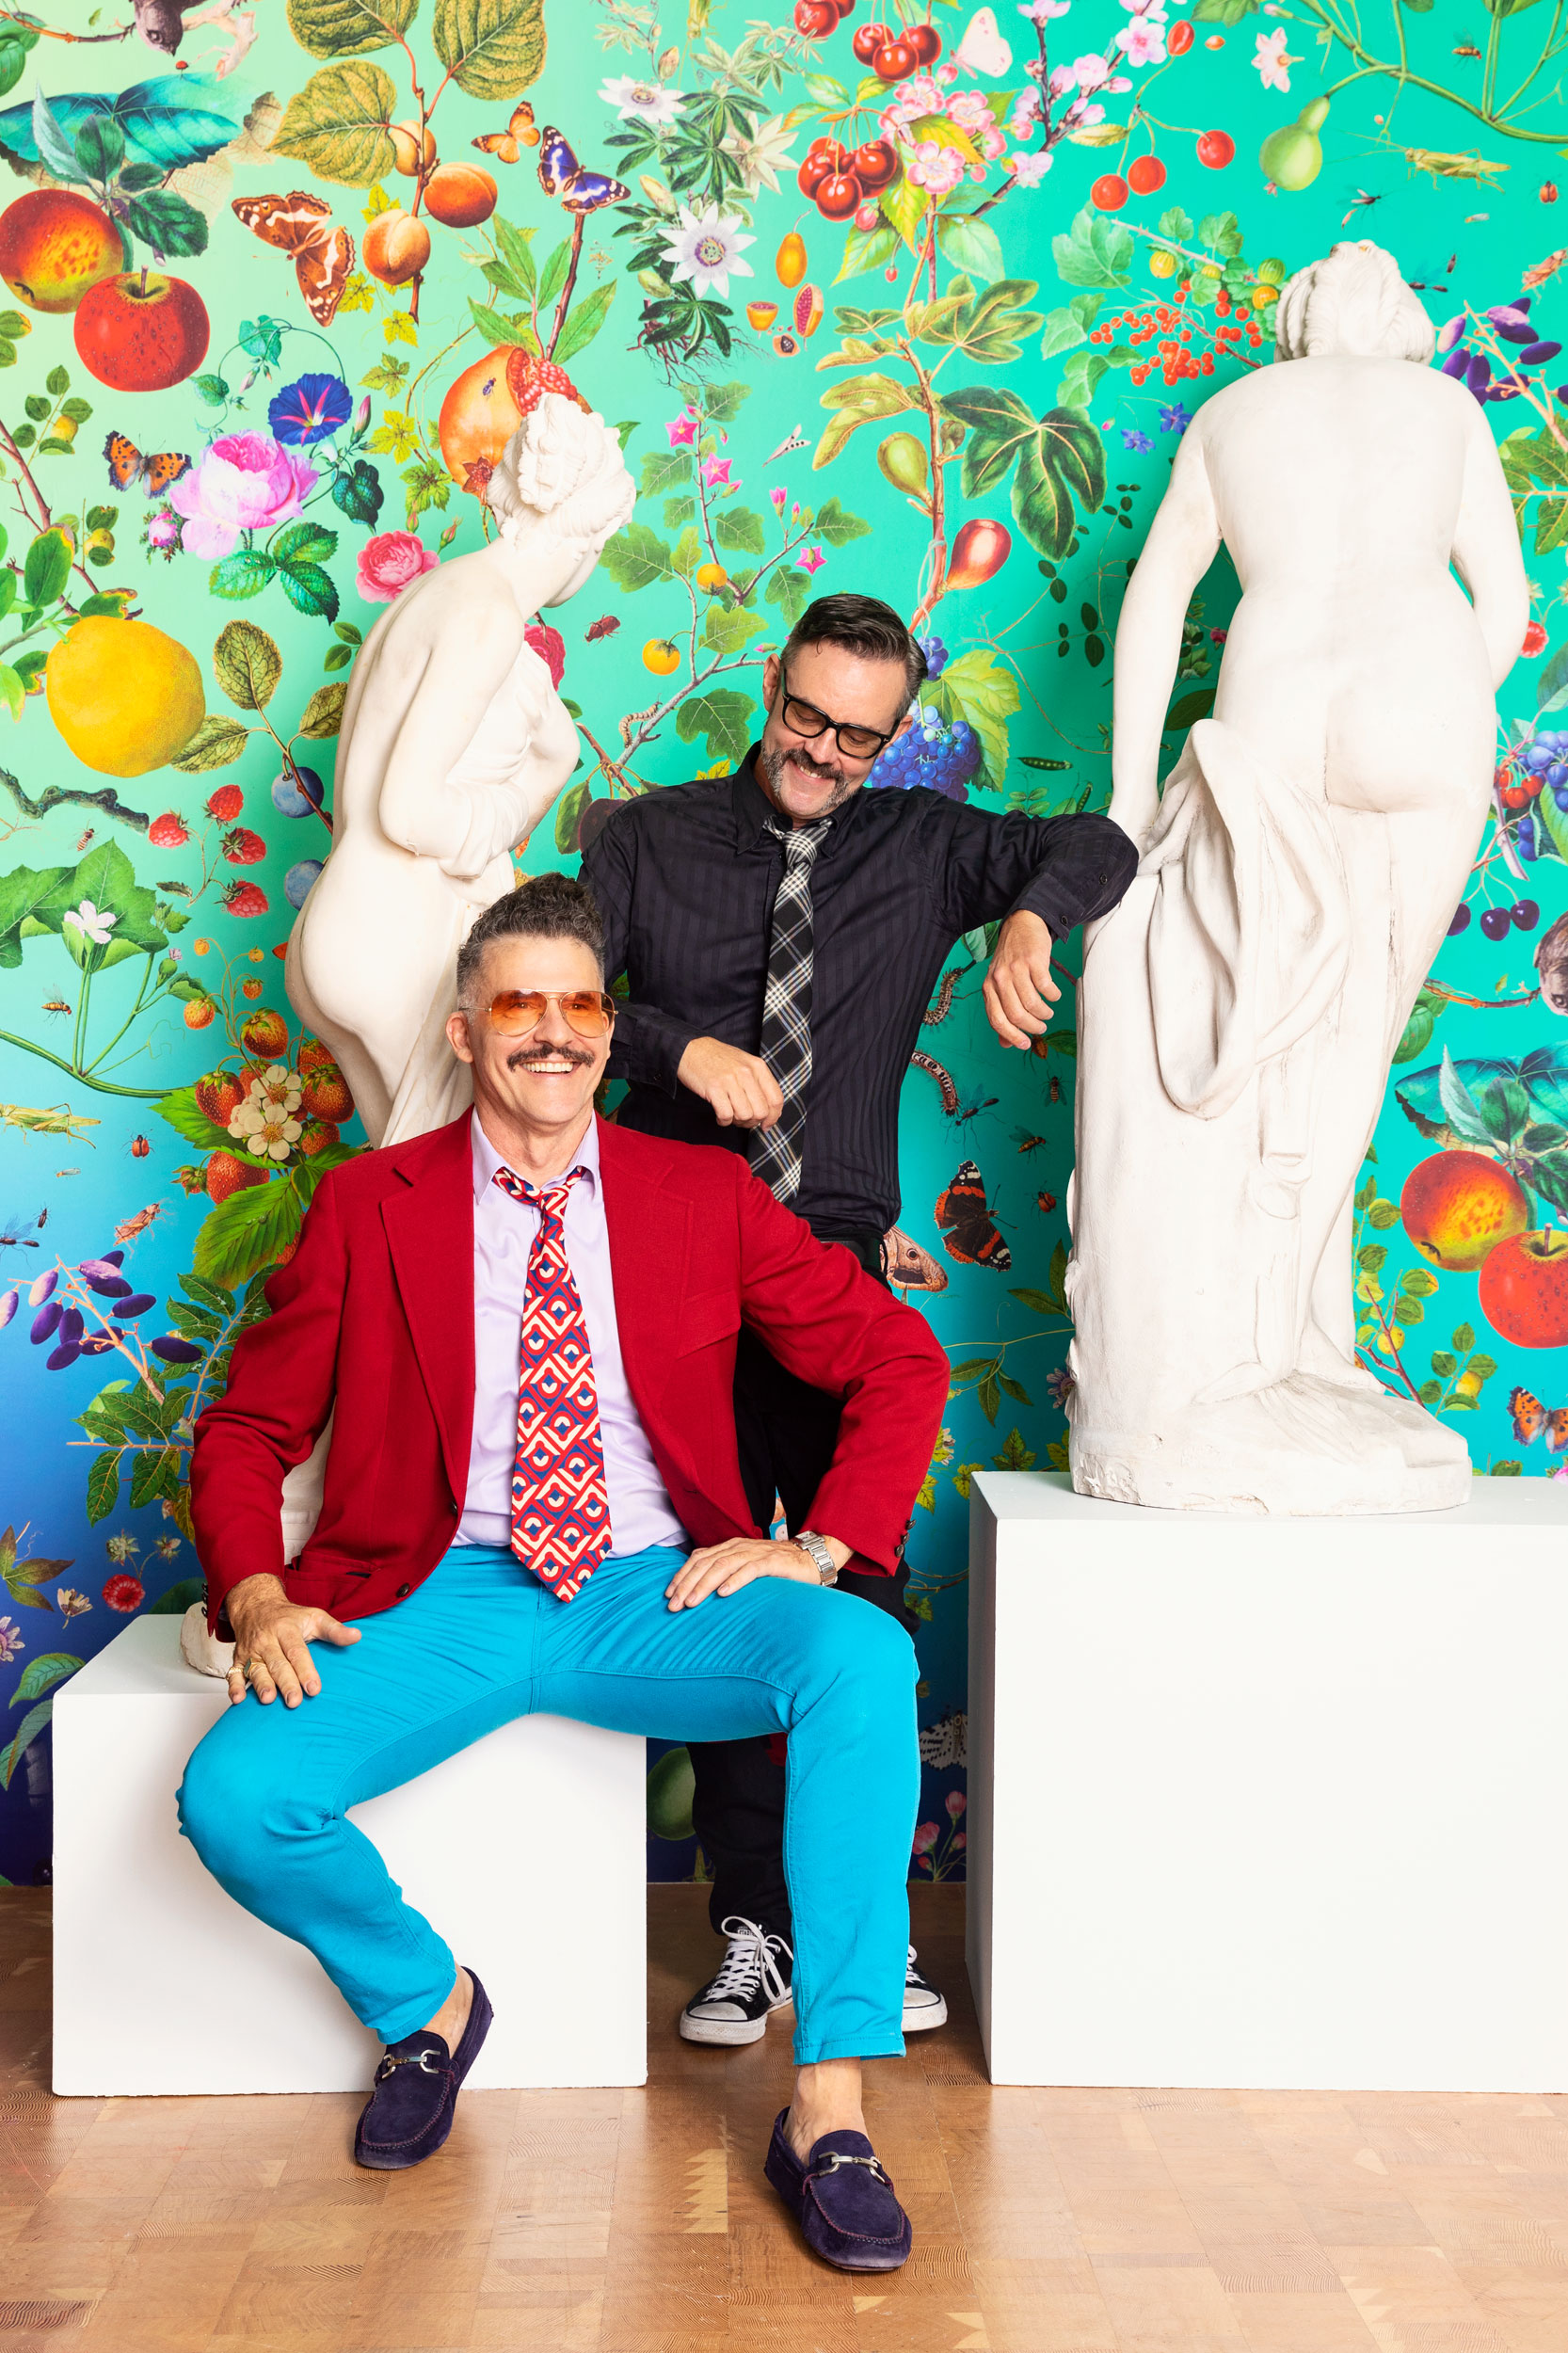 Two men standing with statues in an art installation. Kim Genevieve Los Angeles Portrait Photographer